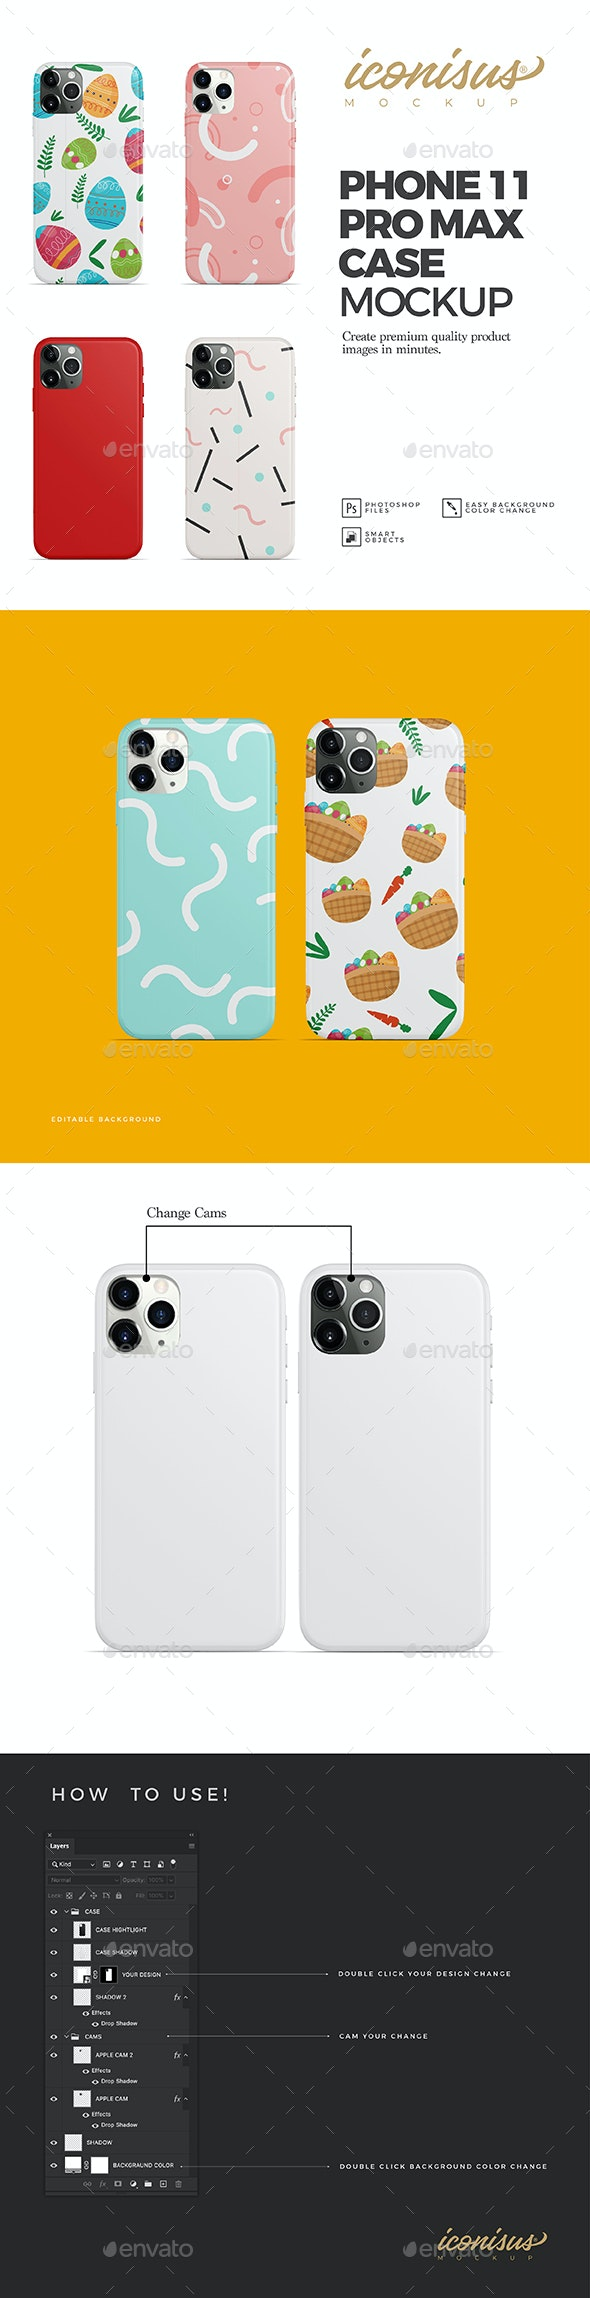 Phone 11 Pro Max Case Mockup Template - Product Mock-Ups Graphics